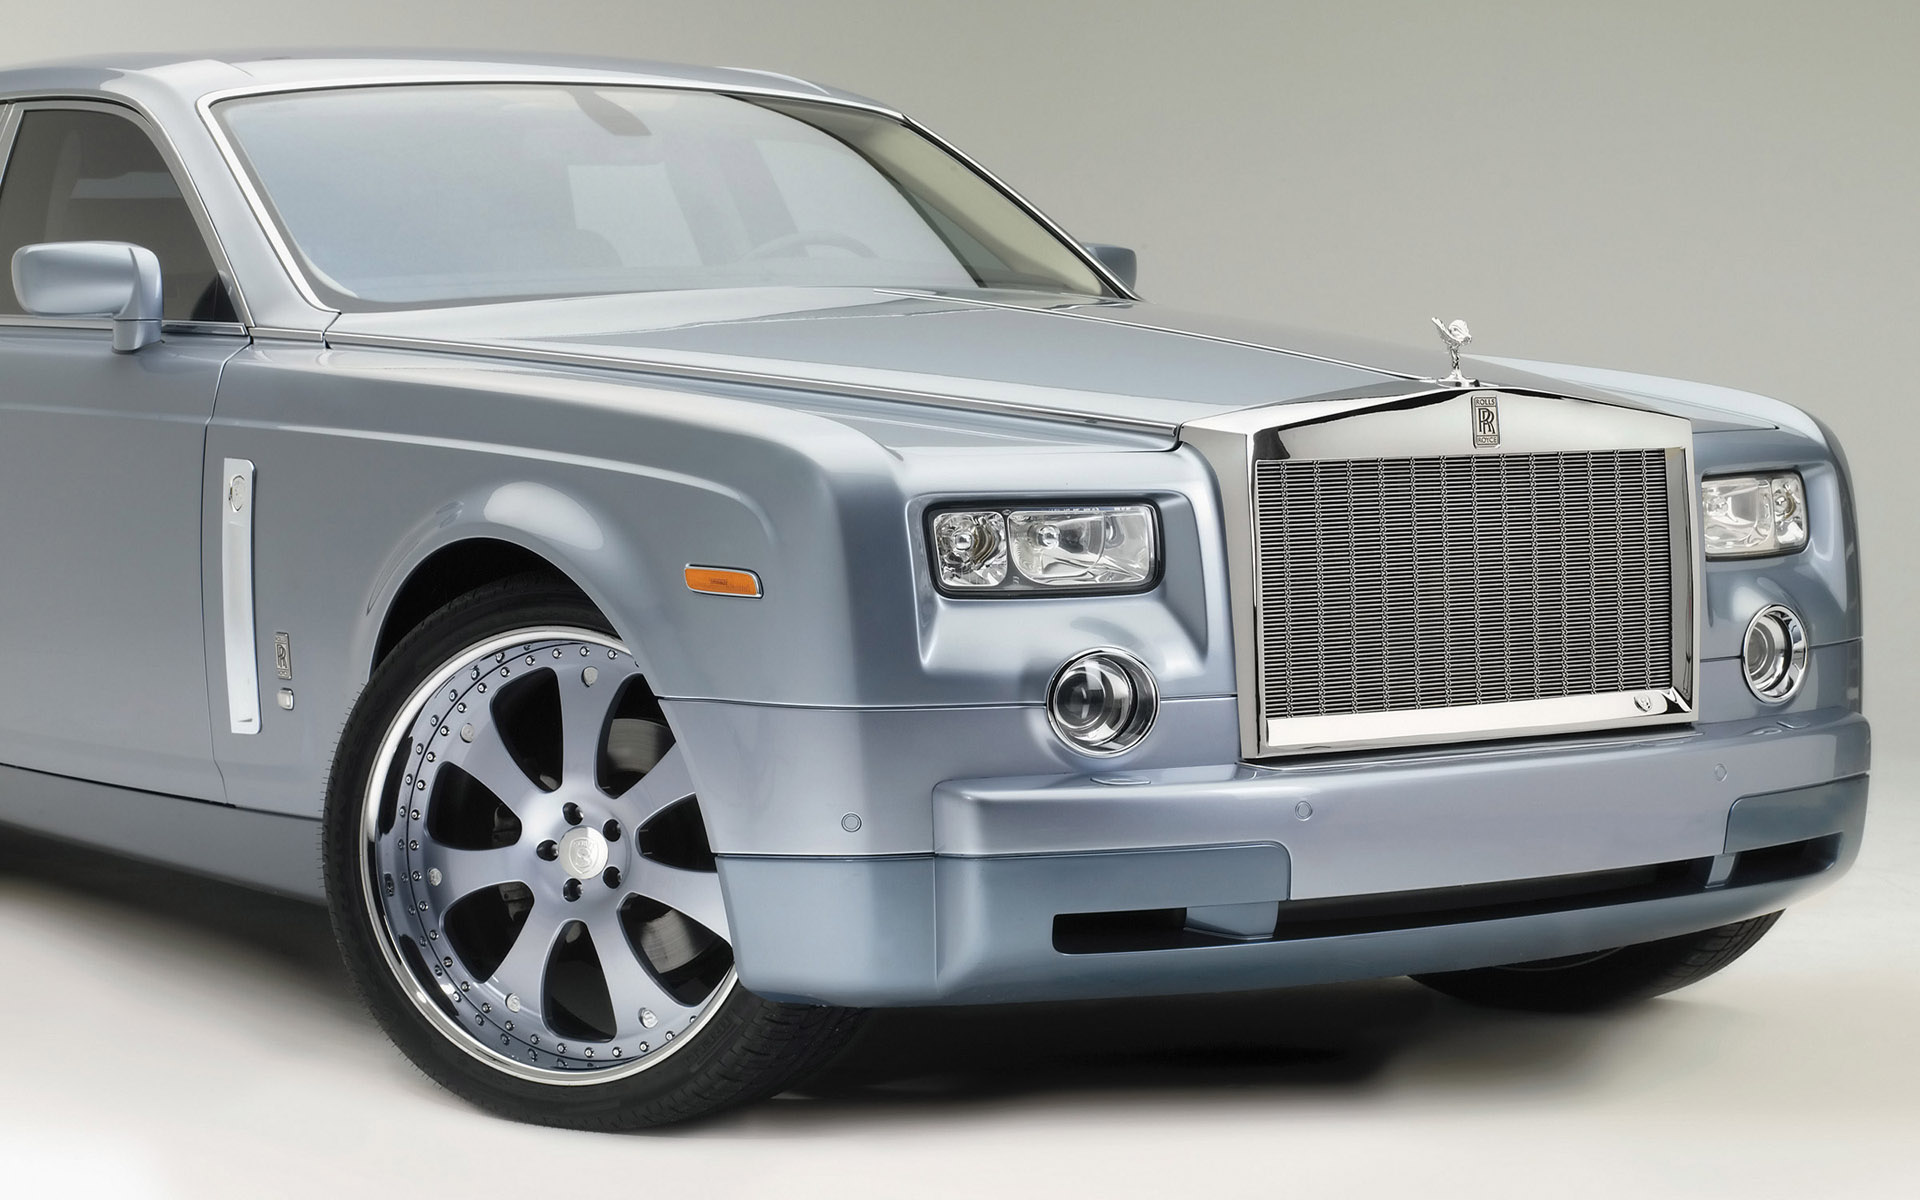 rolls royce integration essay Photo essay rolls-royce custom-built this gorgeous coupe for a mystery  millionaire redefining the dream car by sean o'kane@sokane1.